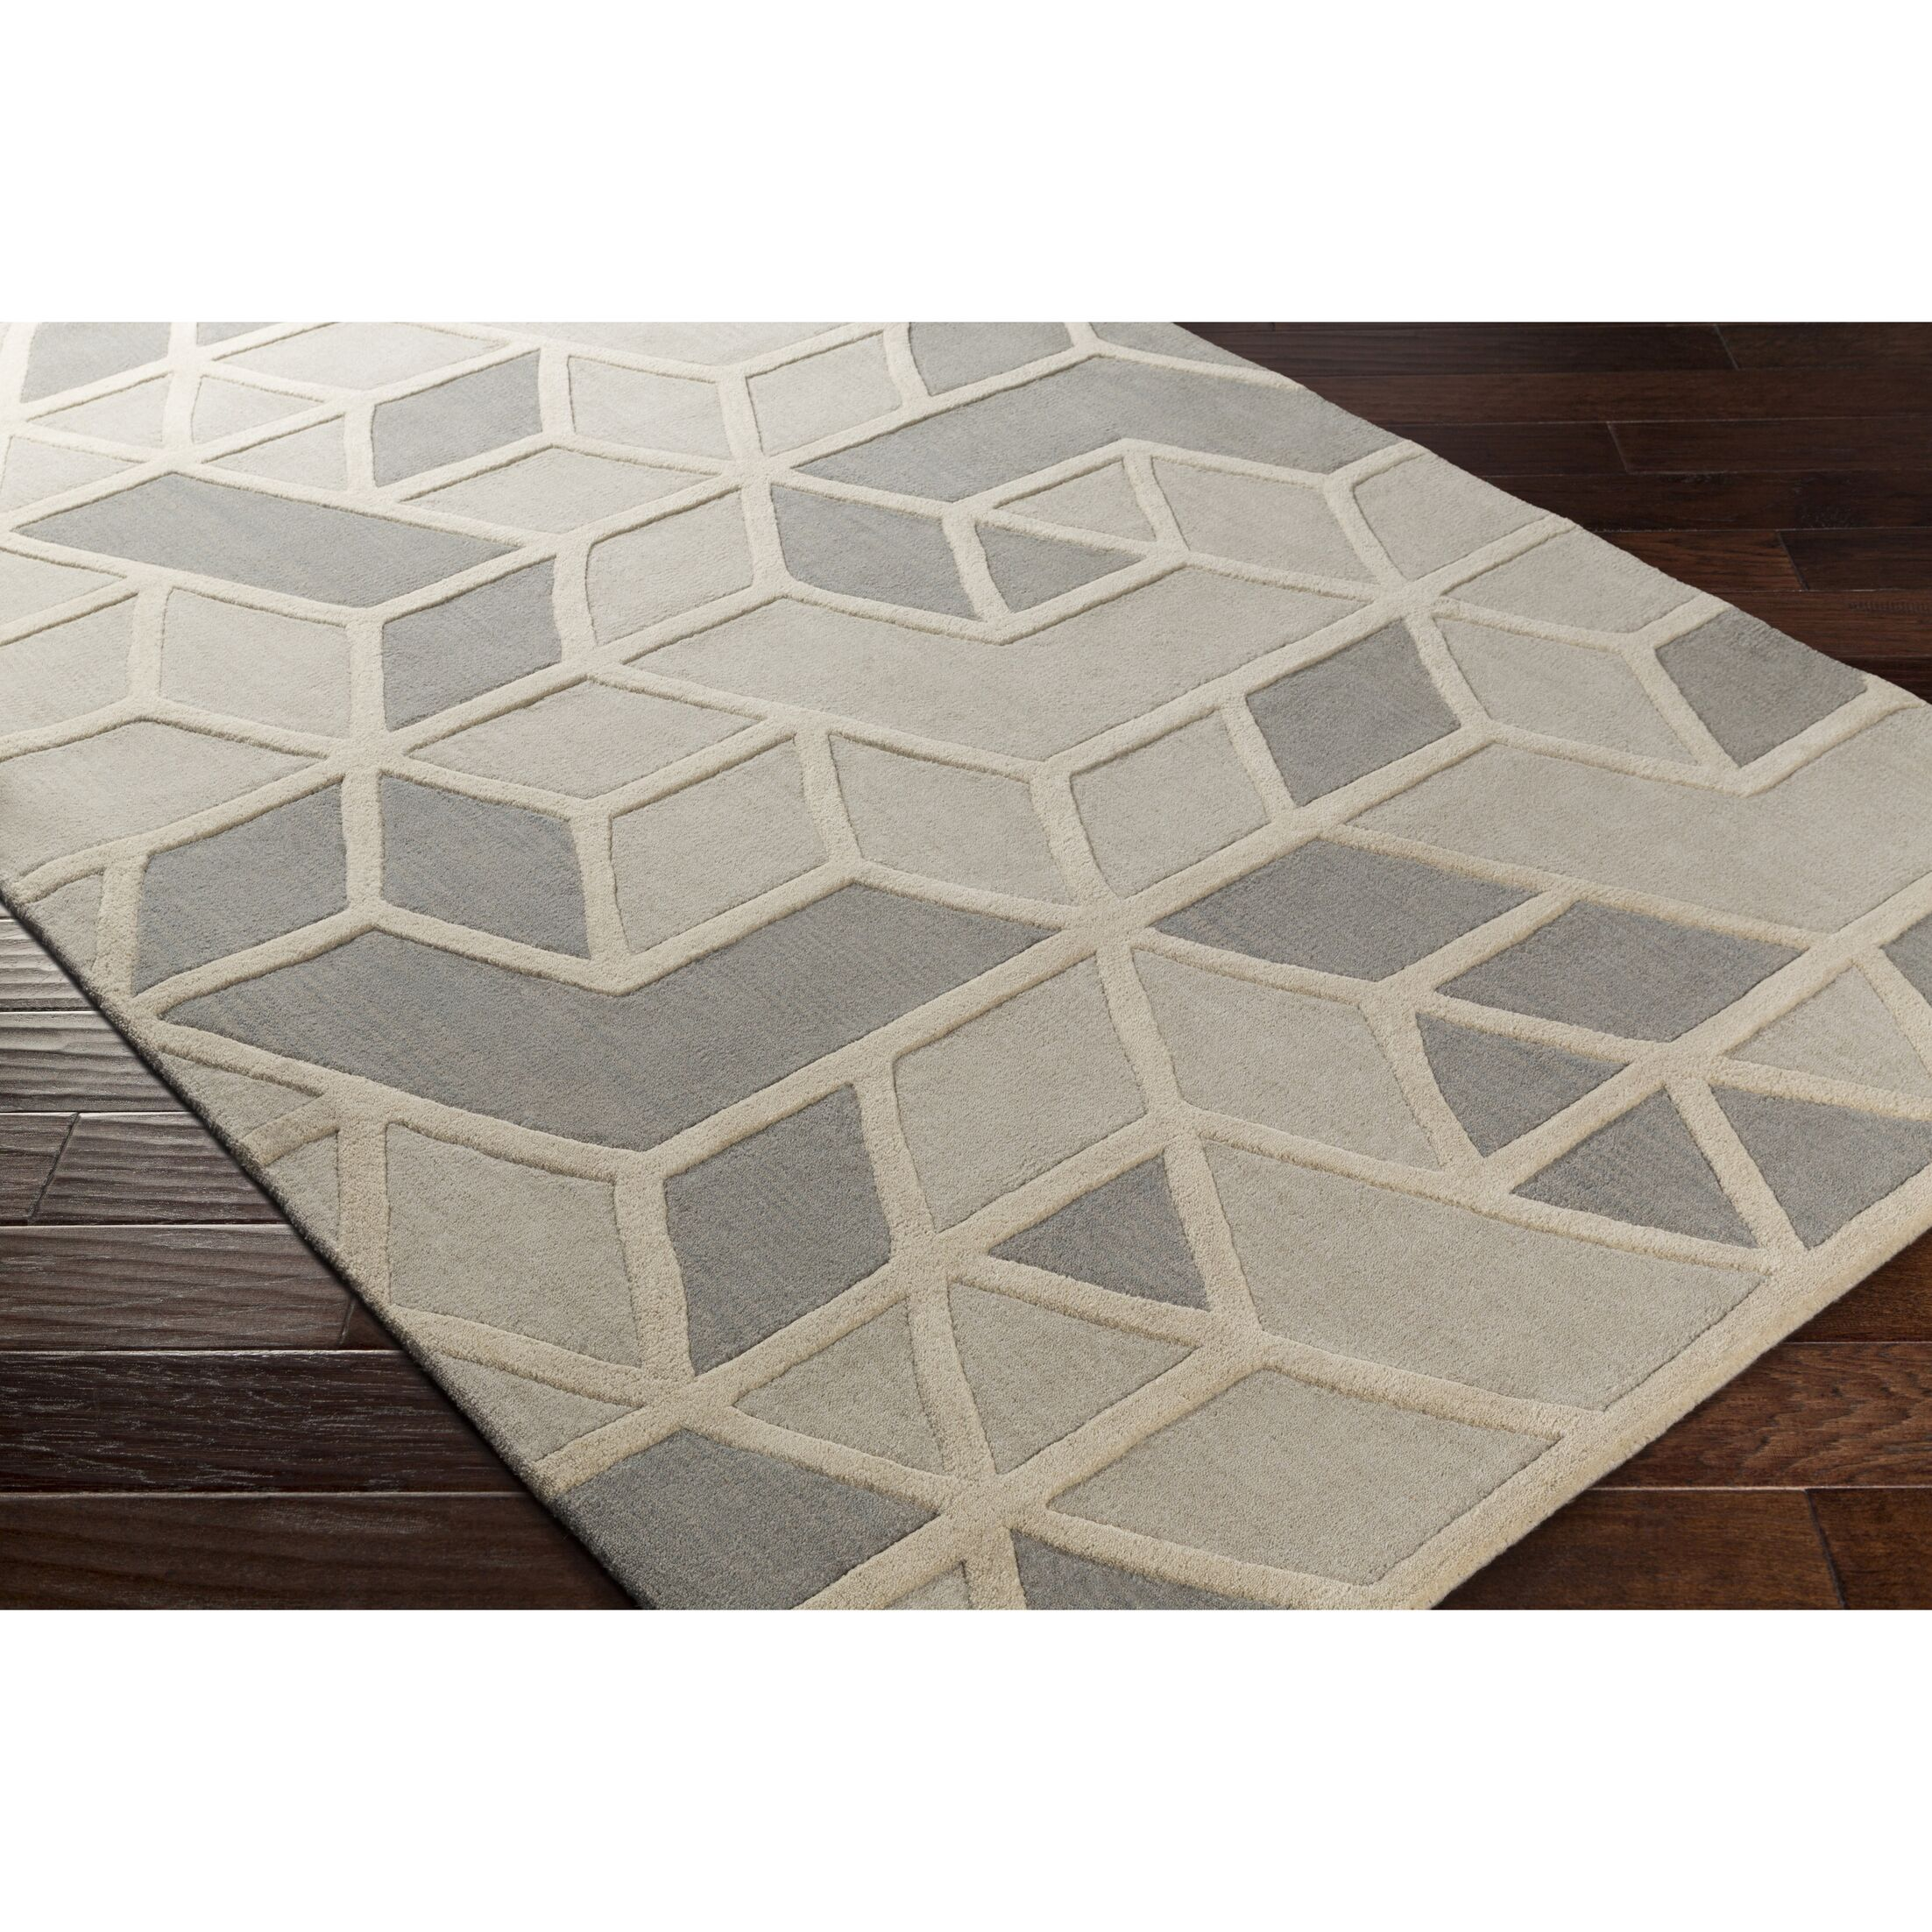 Vaughan Hand-Tufted Rectangle Gray Wool Area Rug Rug Size: Rectangle 5' x 8'